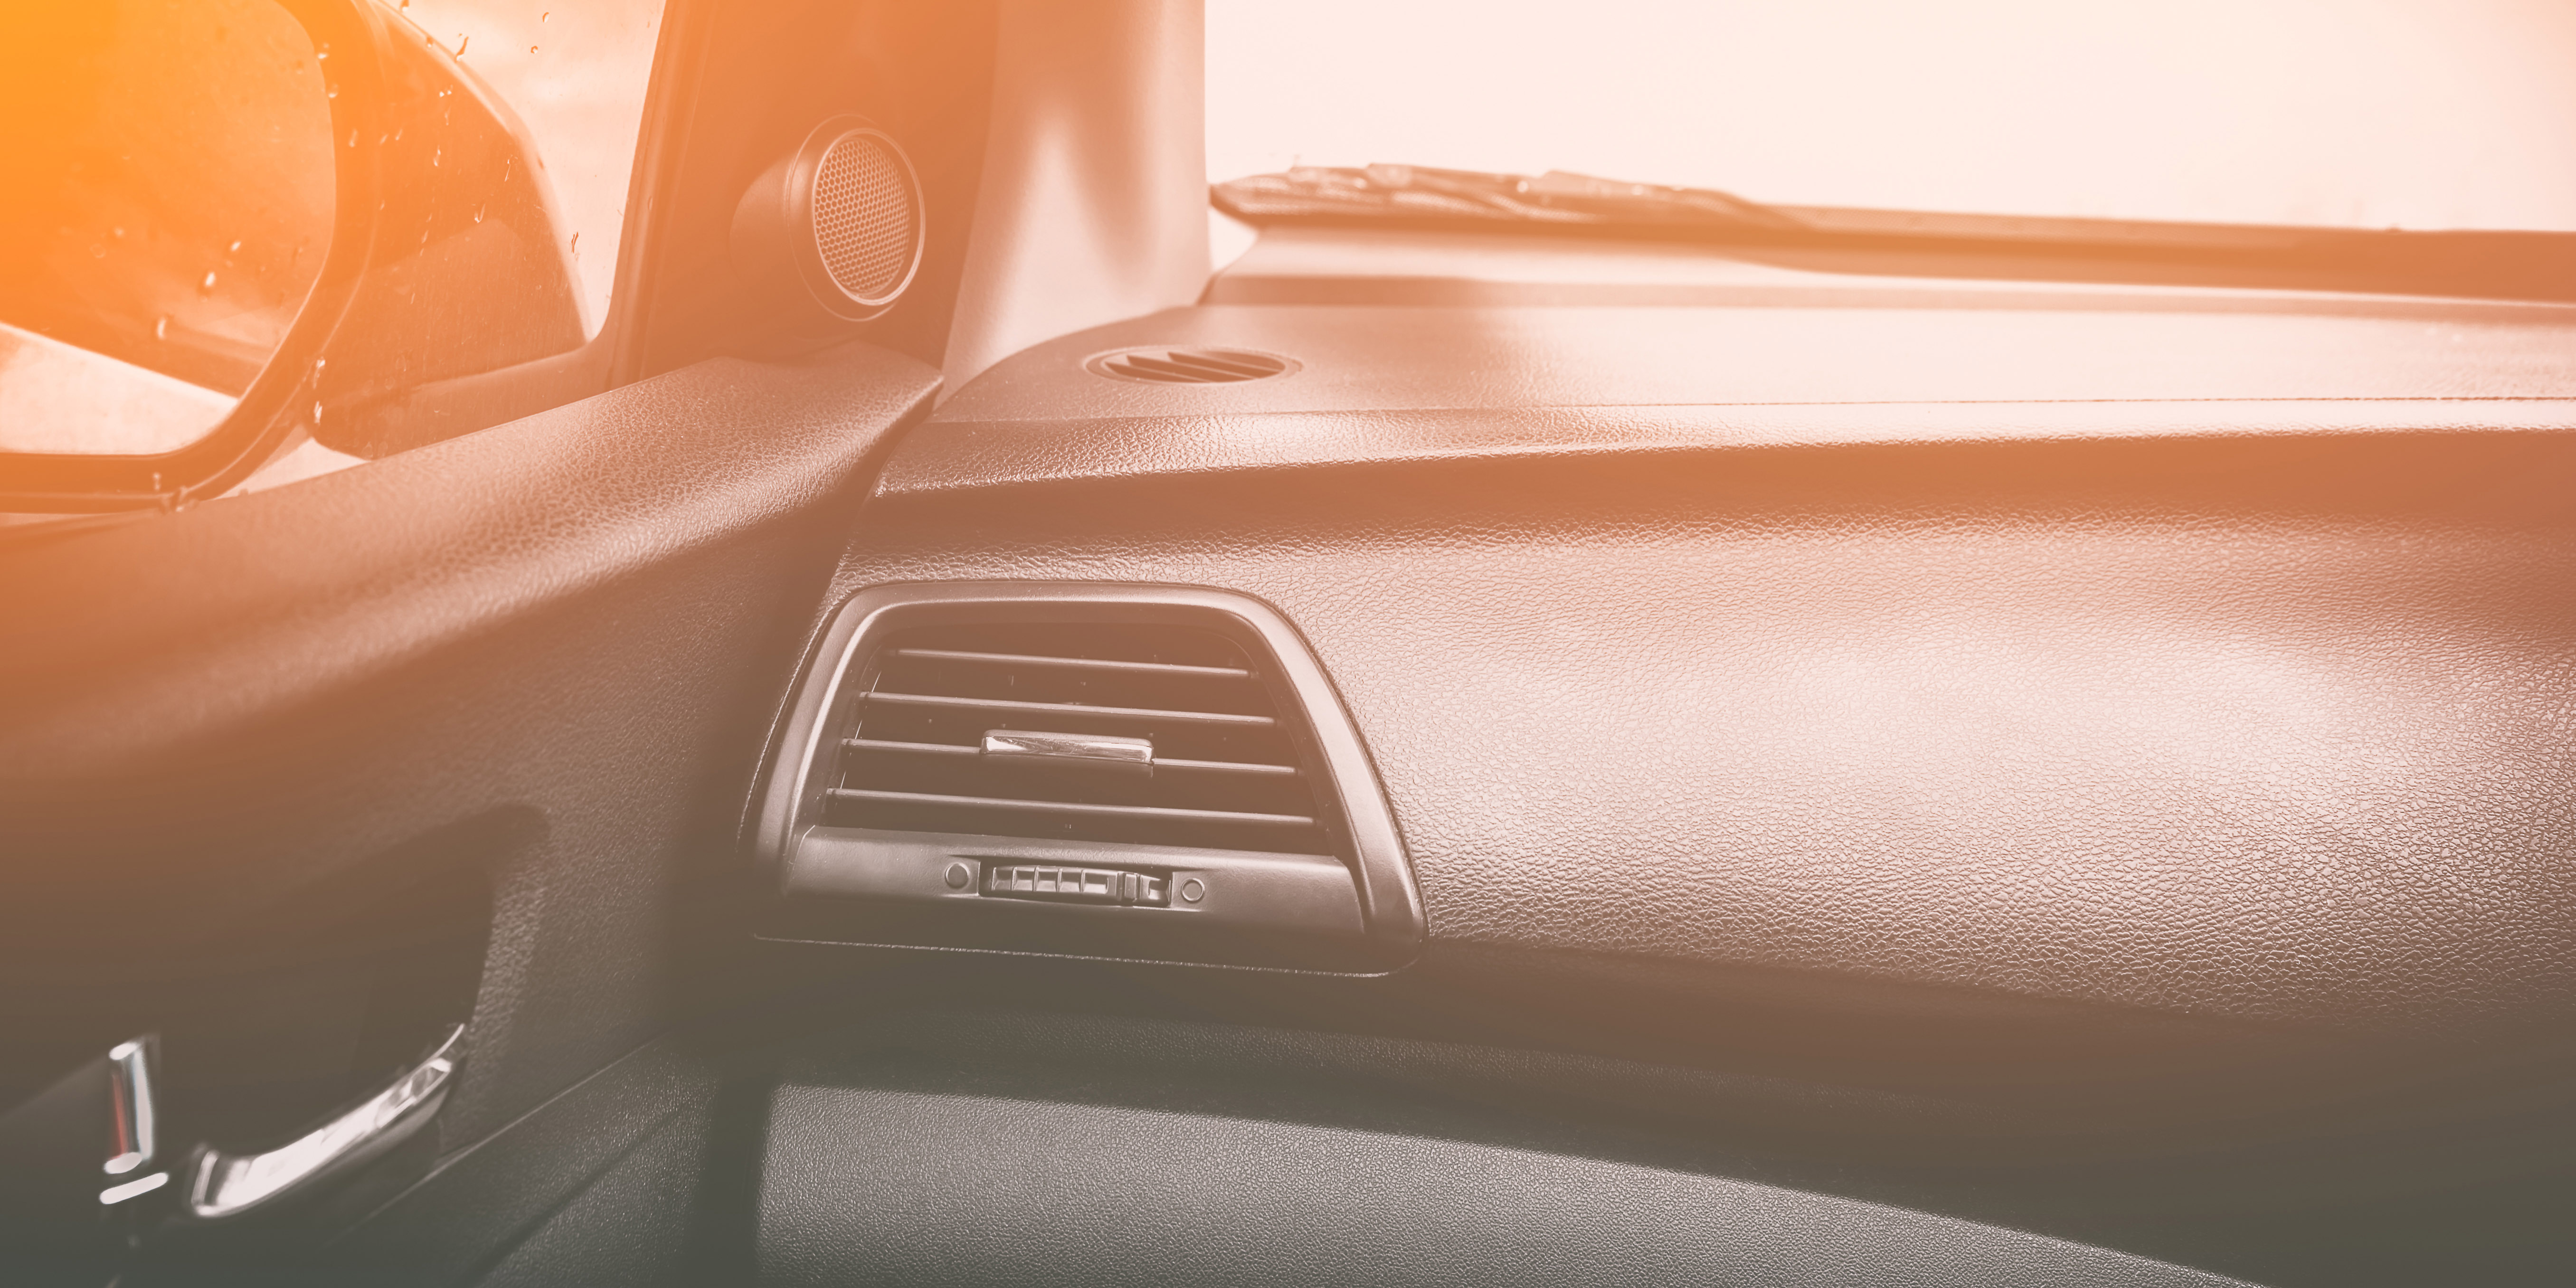 Car air conditioning system, Air Conditioner in front of car